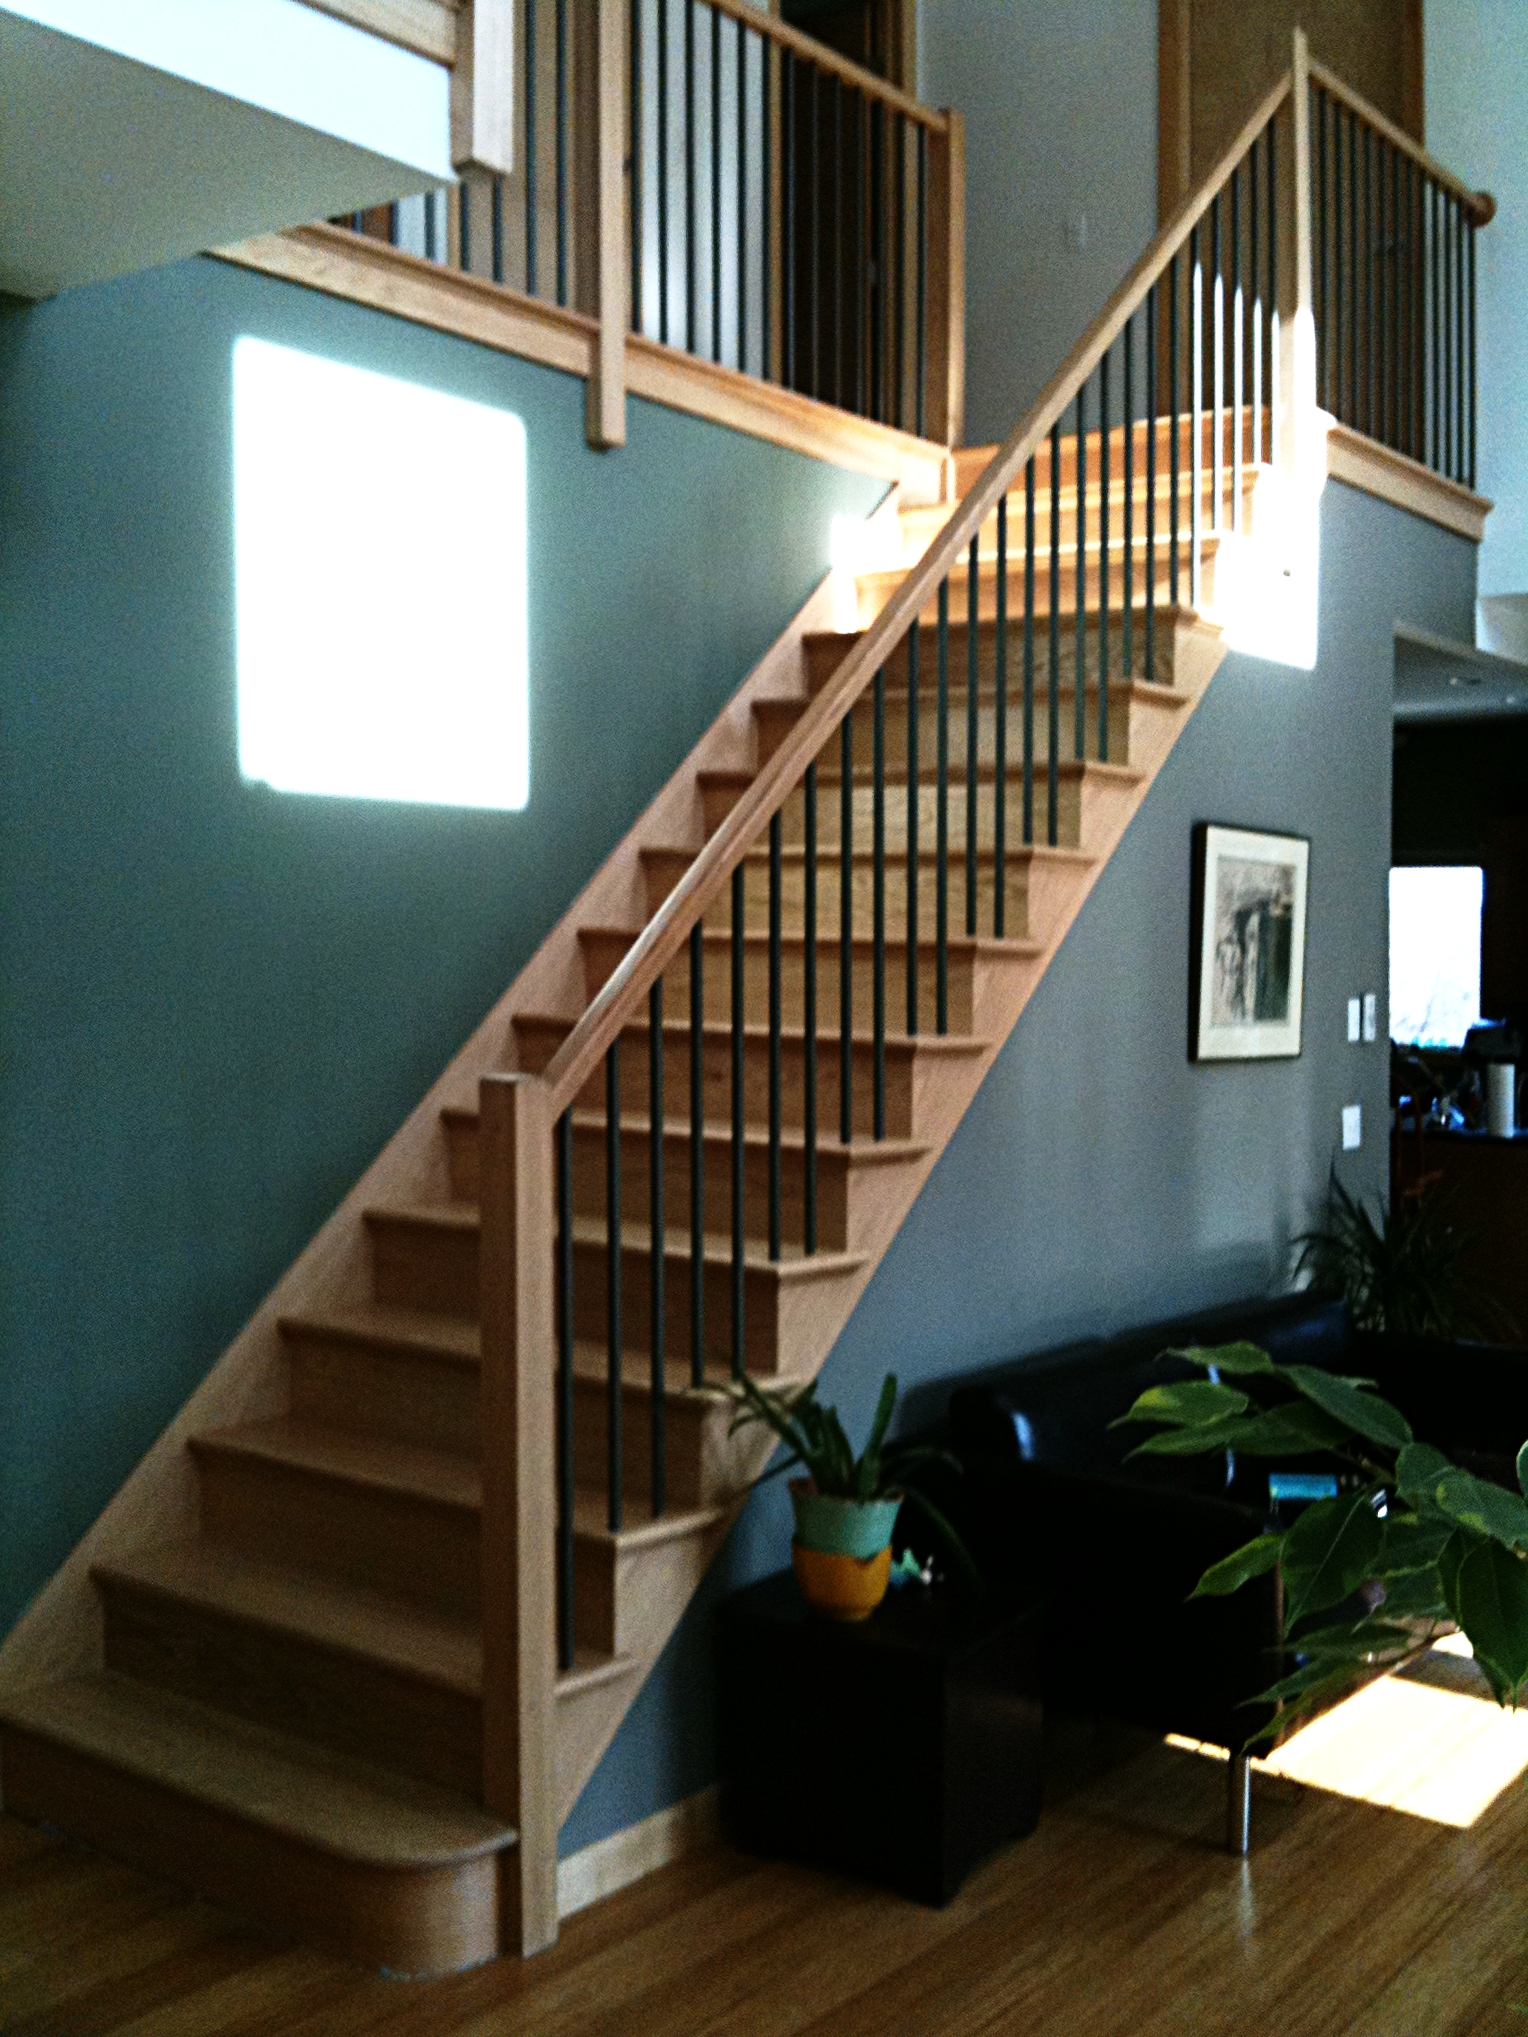 stair-in-blue-apartment.jpg